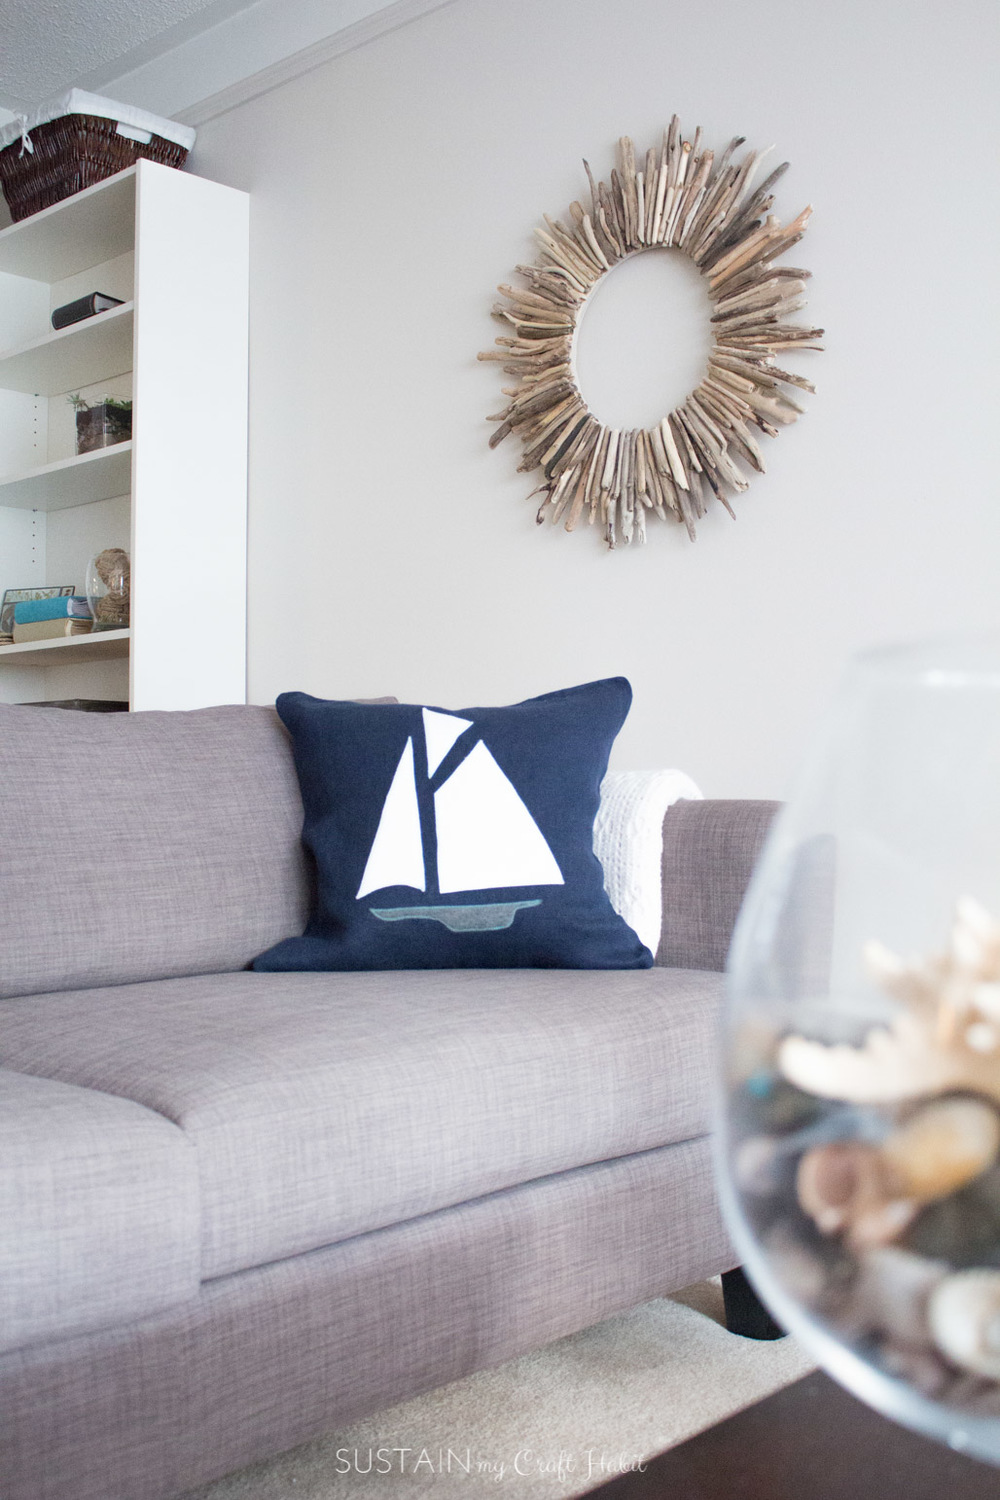 Make your own nautical themed throw pillow with a plain pillow case and felt fabric. Easy step-by-step tutorial included.